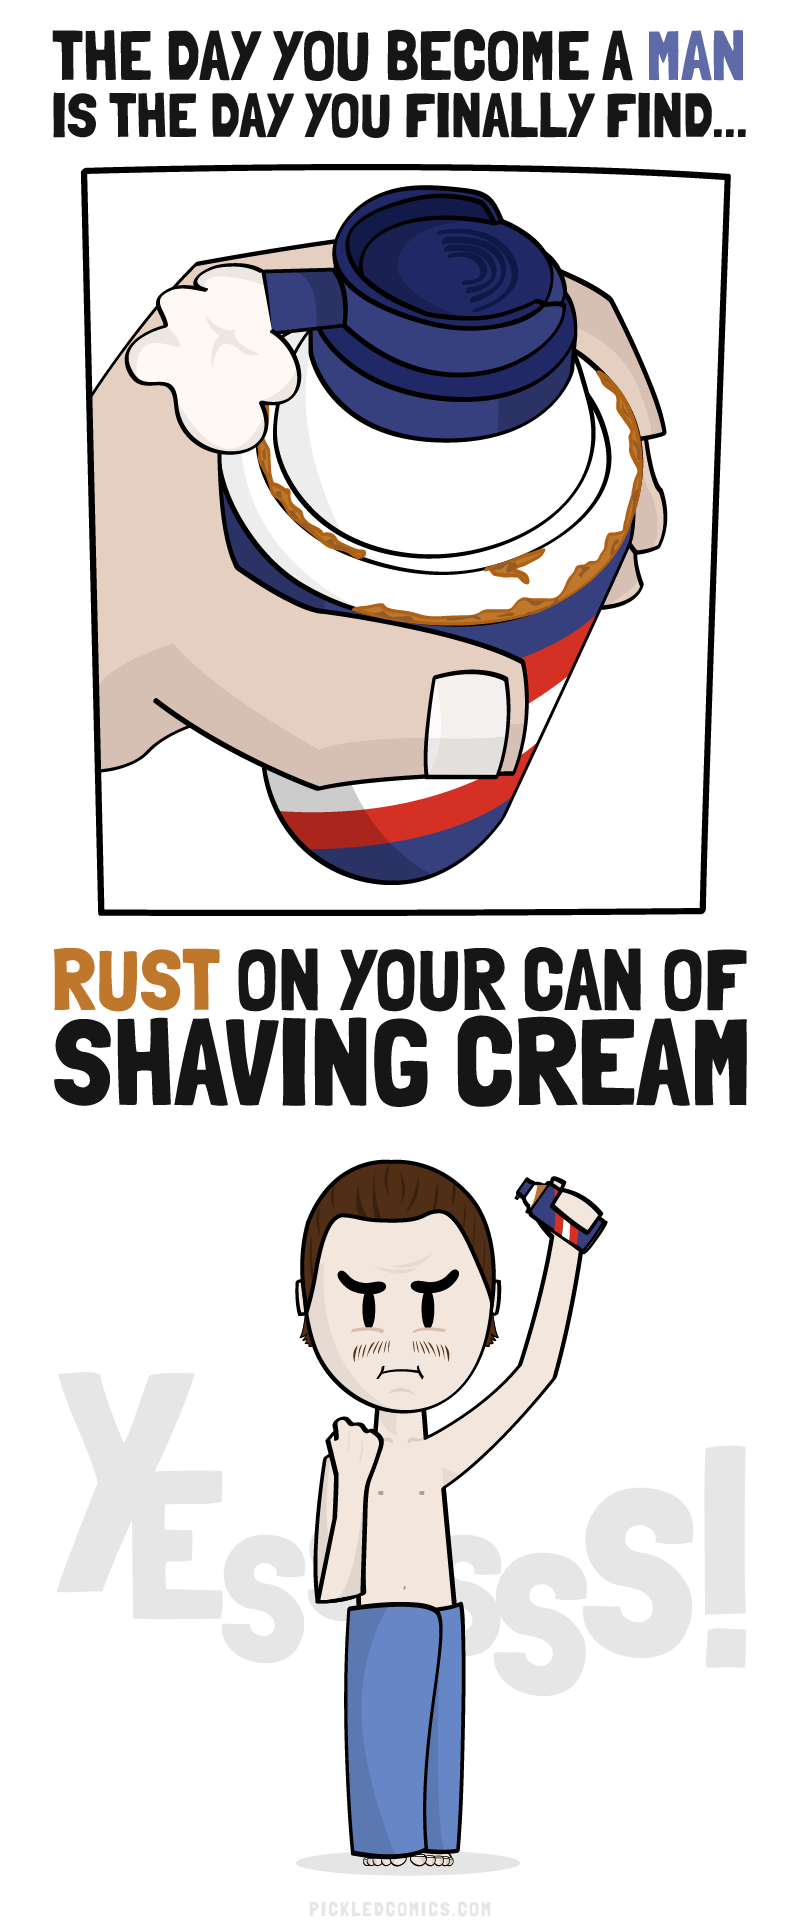 The day you become a man is the day you finally find rust on your can of shaving cream.